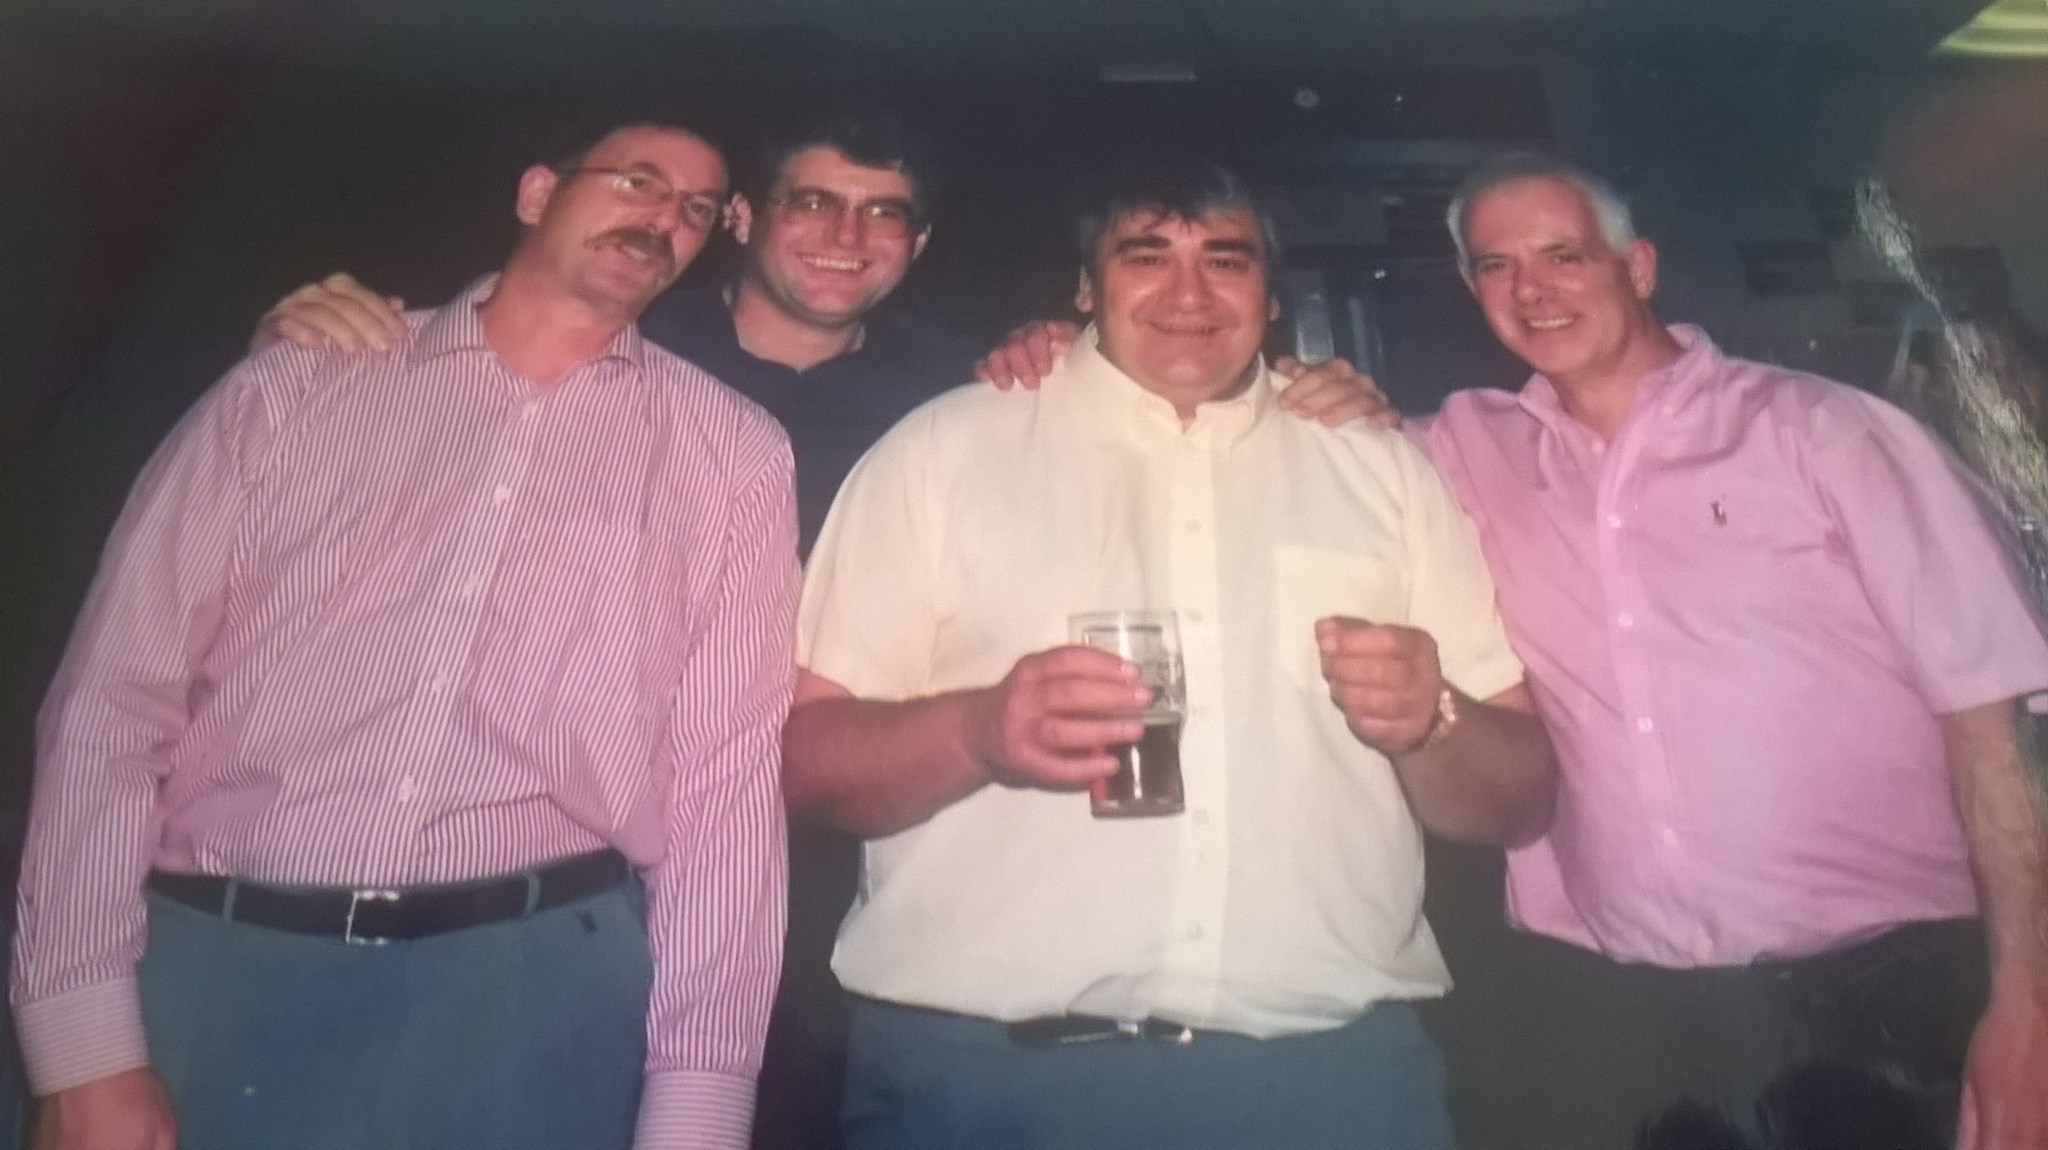 the boys, from the gang, left to right, Mick, Phil, Pete and dad (Dave)